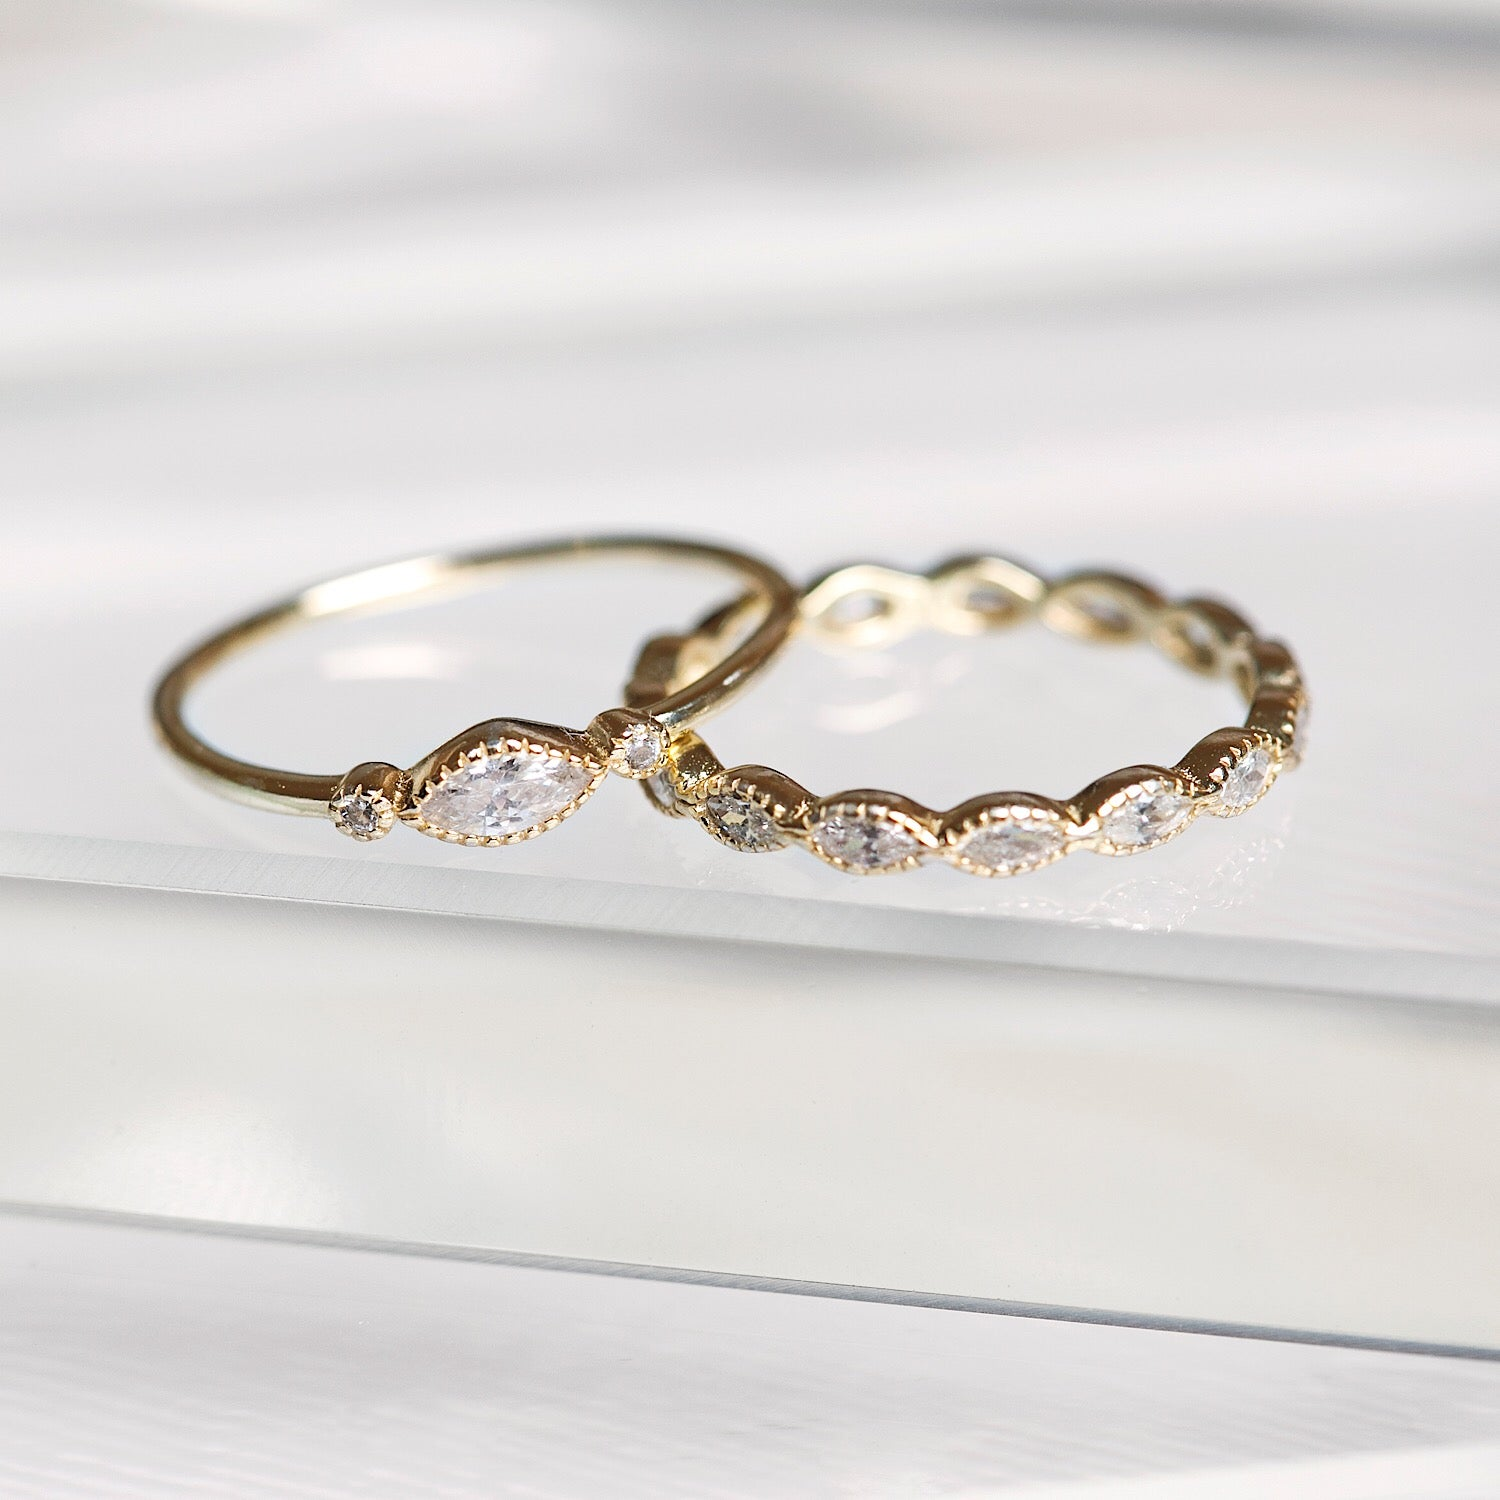 Marquise Ring, Rings - AMY O. Jewelry